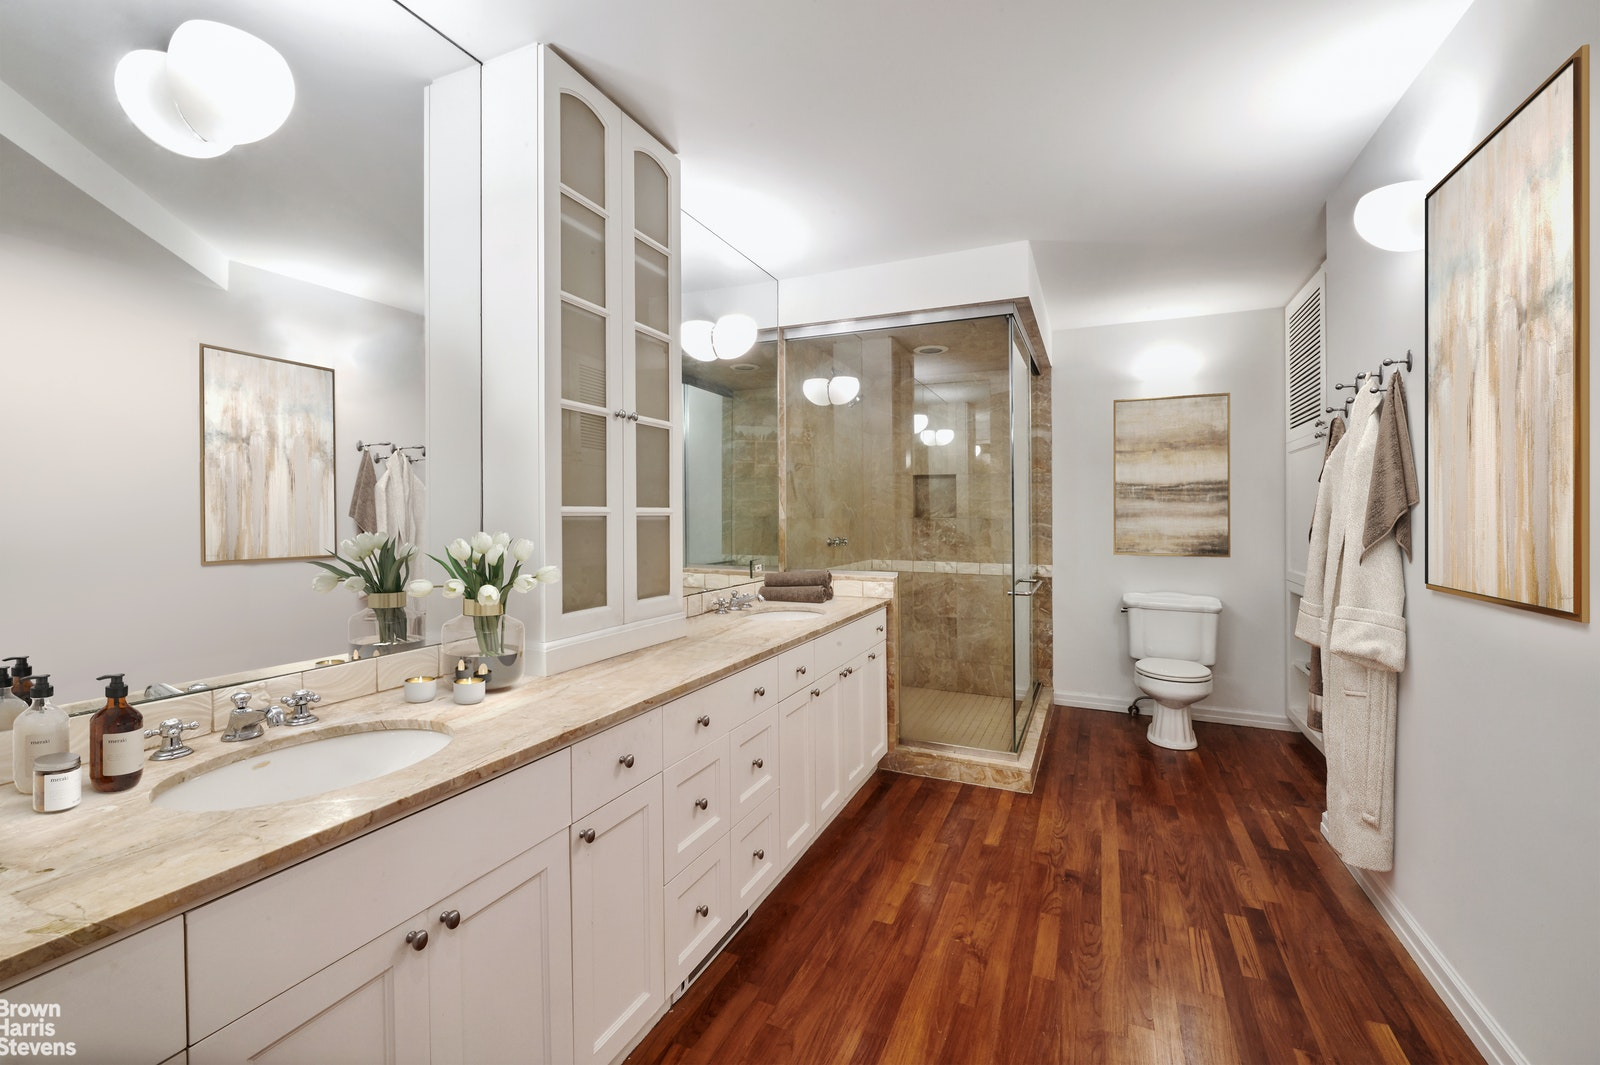 225 West 83rd Street 4k, Upper West Side, NYC, 10024, $4,995,000, Property For Sale, Halstead Real Estate, Photo 11